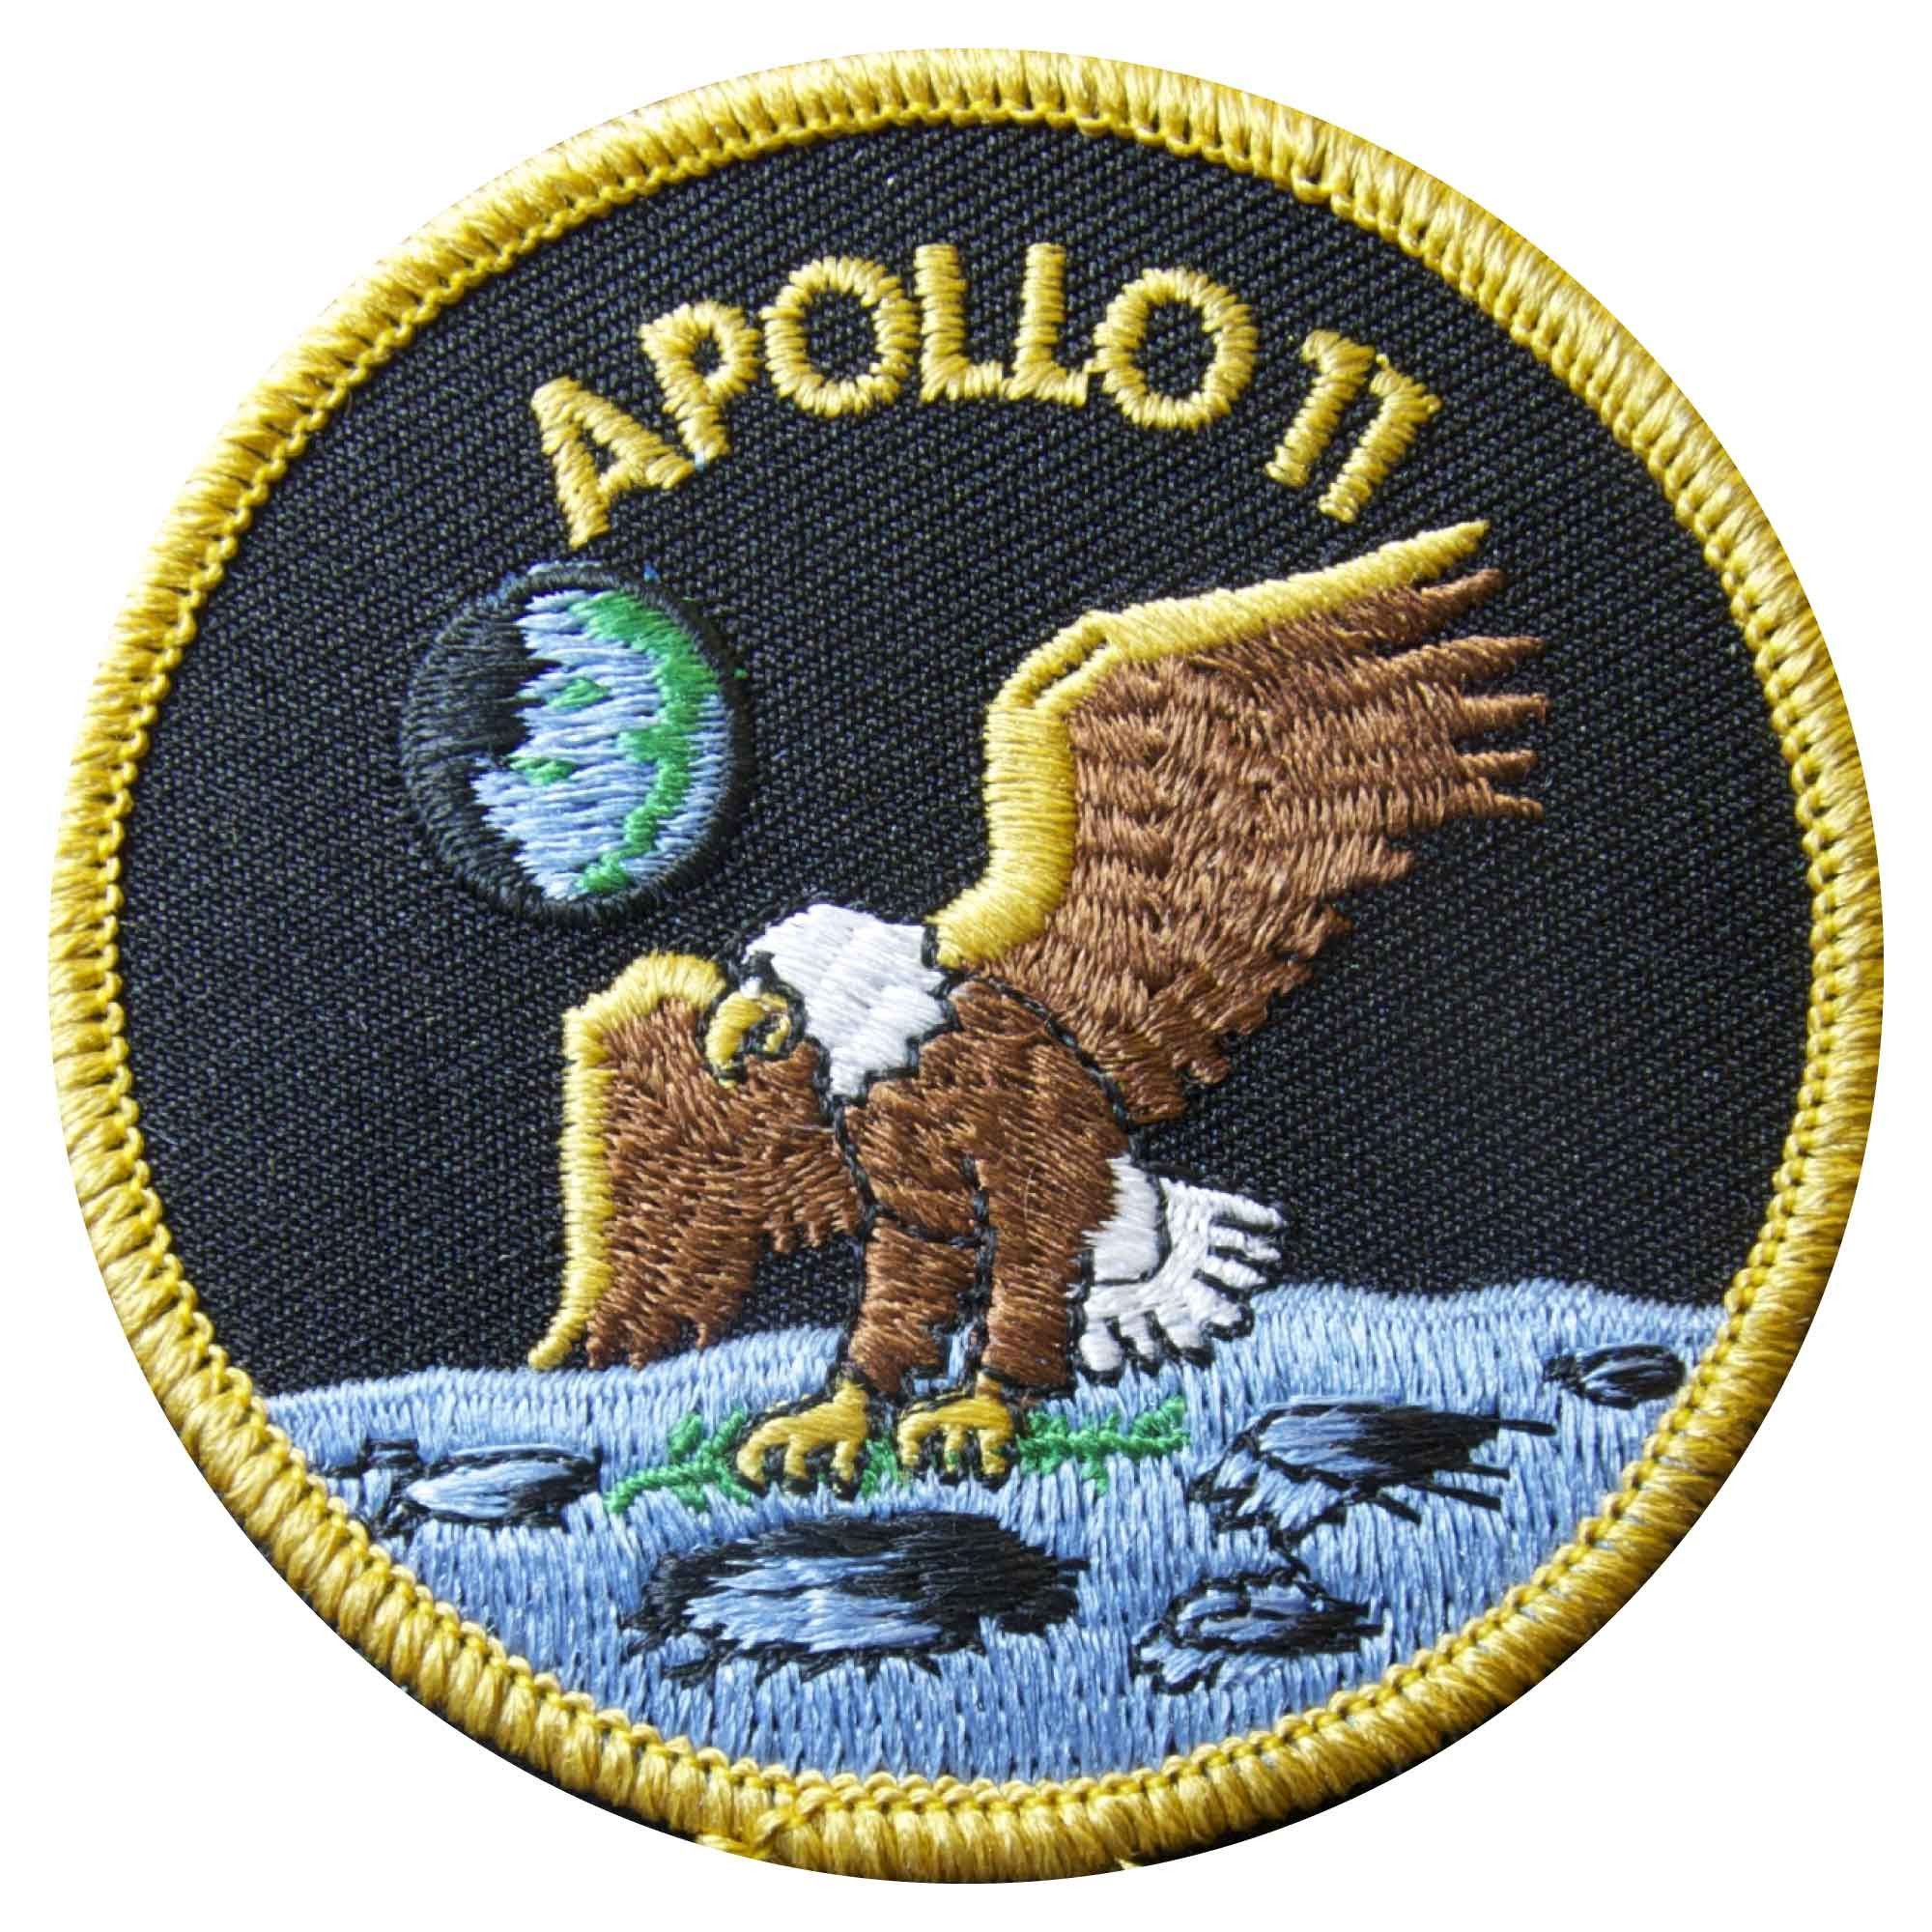 nasa patches on sleeve - photo #44